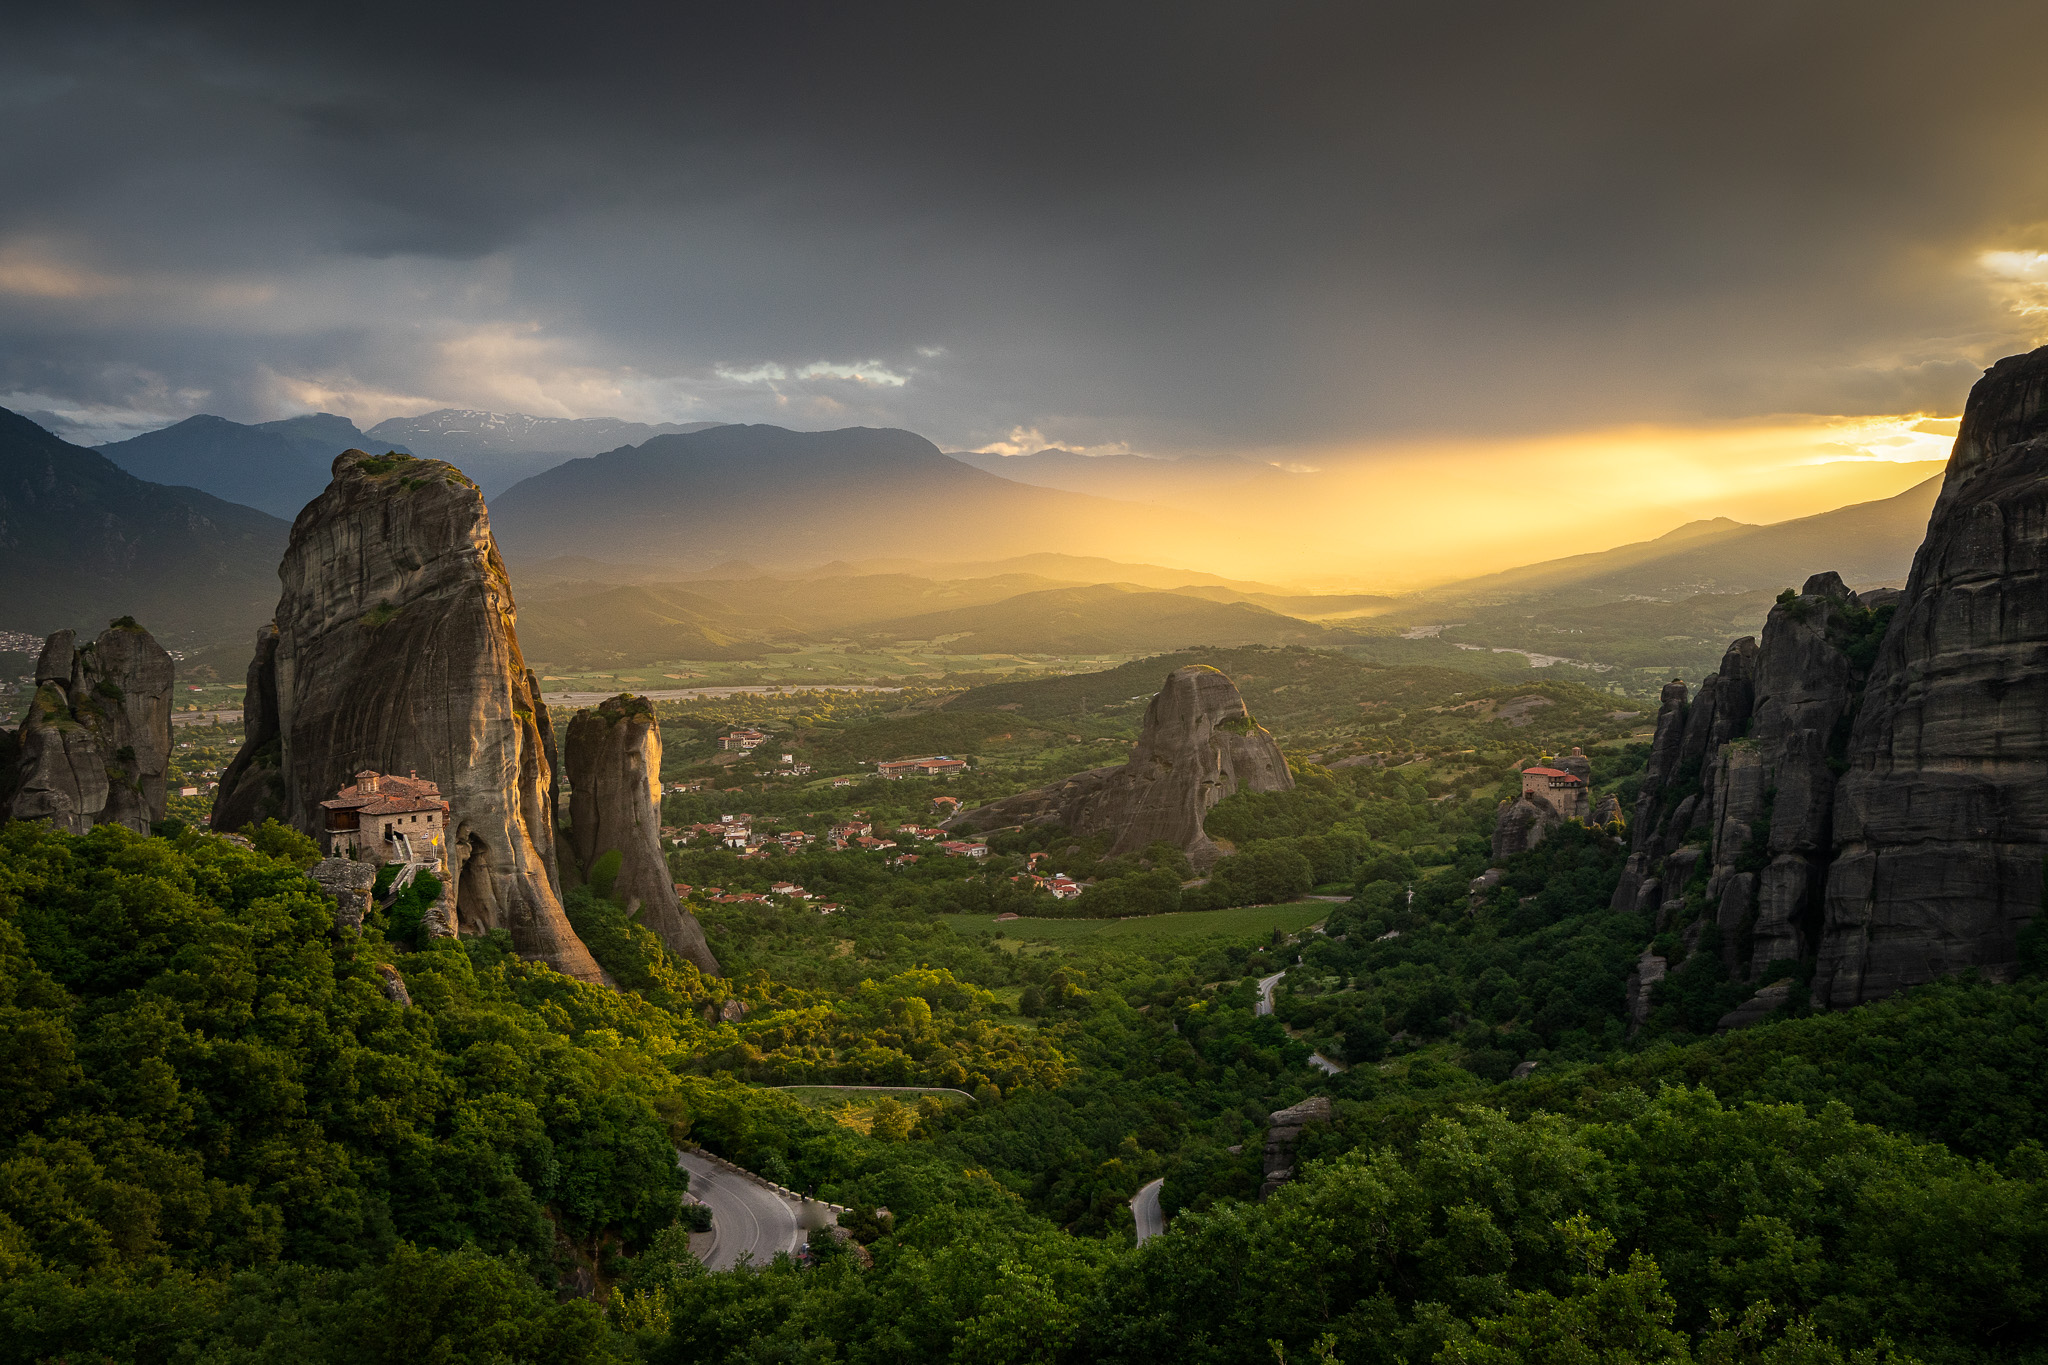 Dimming light, when the sun sets down on Meteora